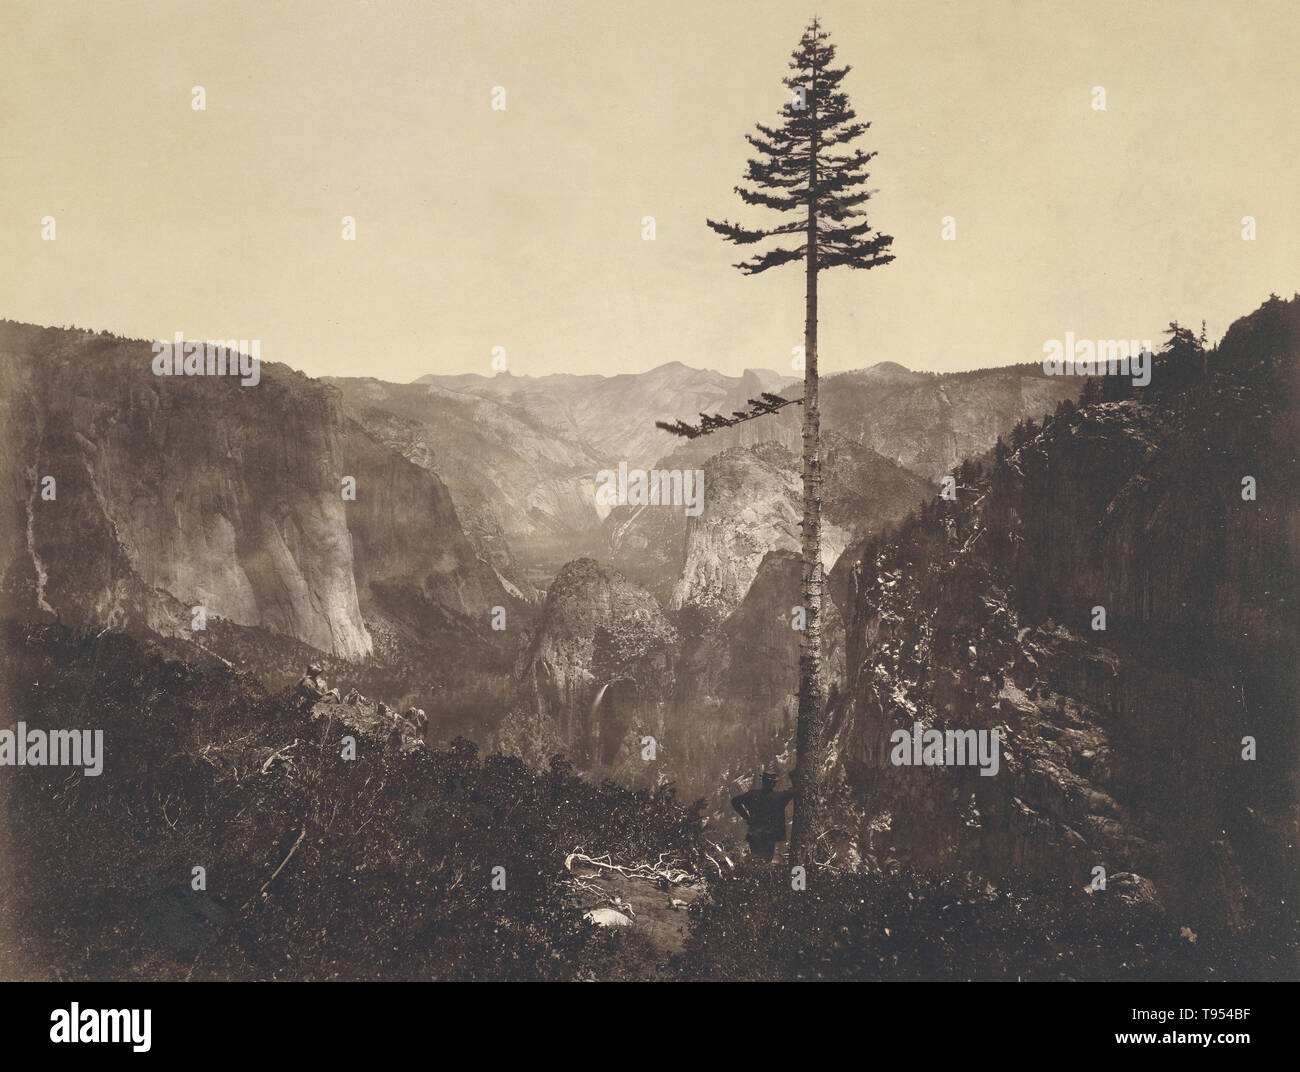 Yosemite Valley, from the Mariposa Trail. Mariposa County, California. C.L. Weed (American, 1824 - 1903); negative 1864; print 1864 - 1872. Albumen silver print. - Stock Image